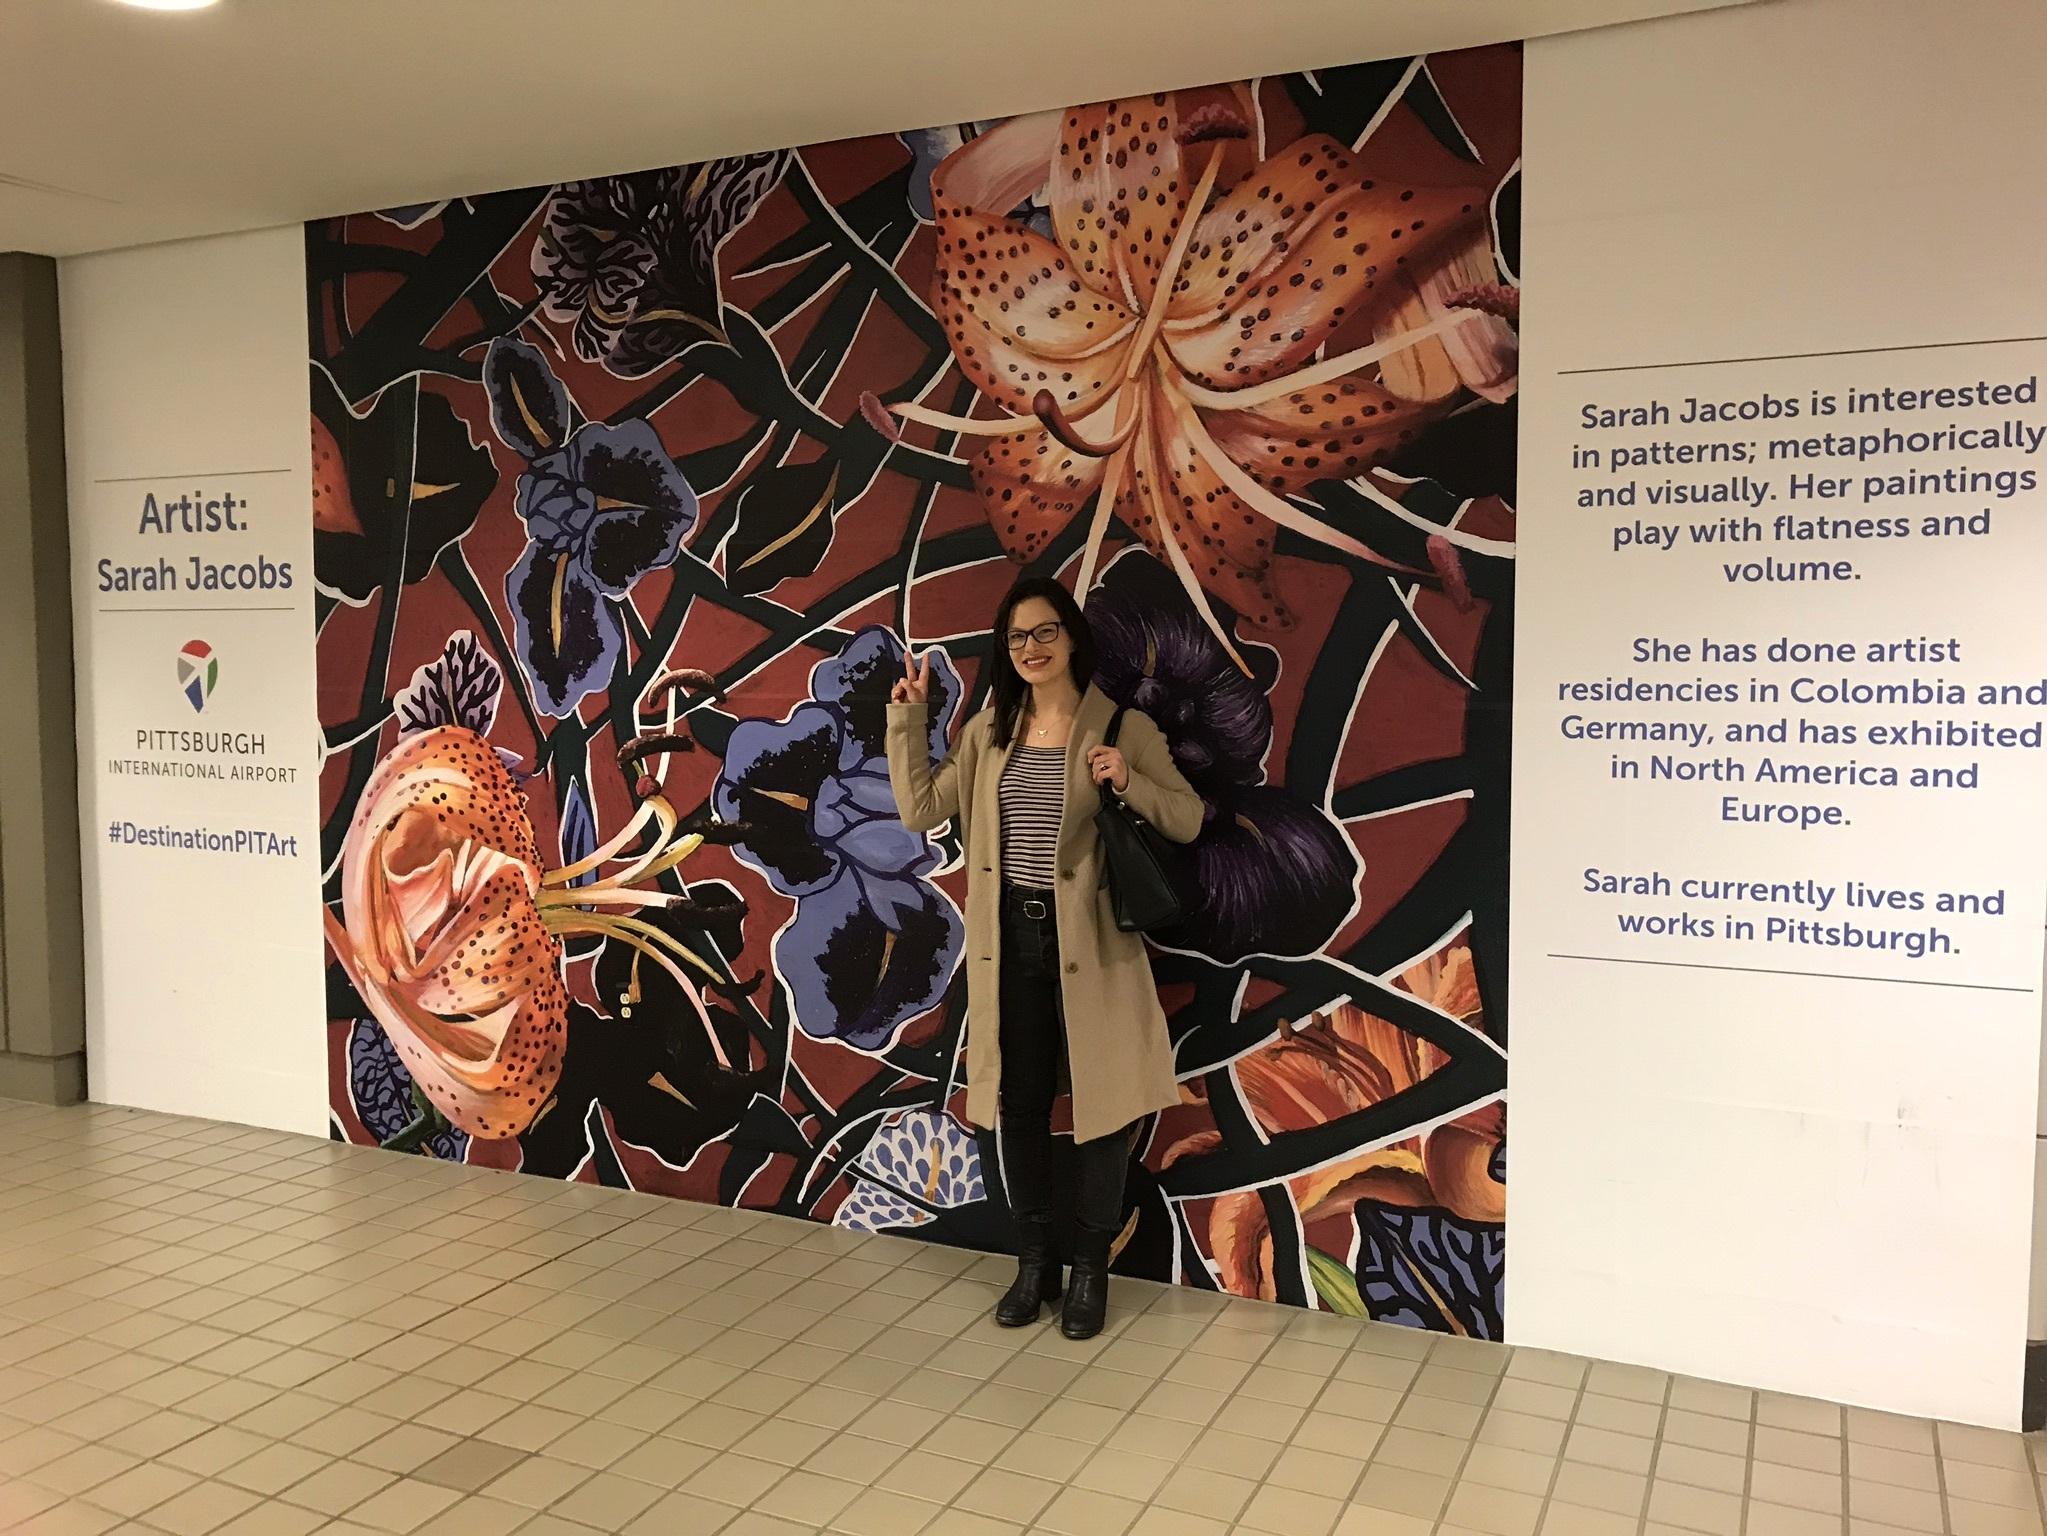 Sarah Jacobs with a large-scale reproduction of her painting, Fake Flowers, at the Pittsburgh International Airport, 2019